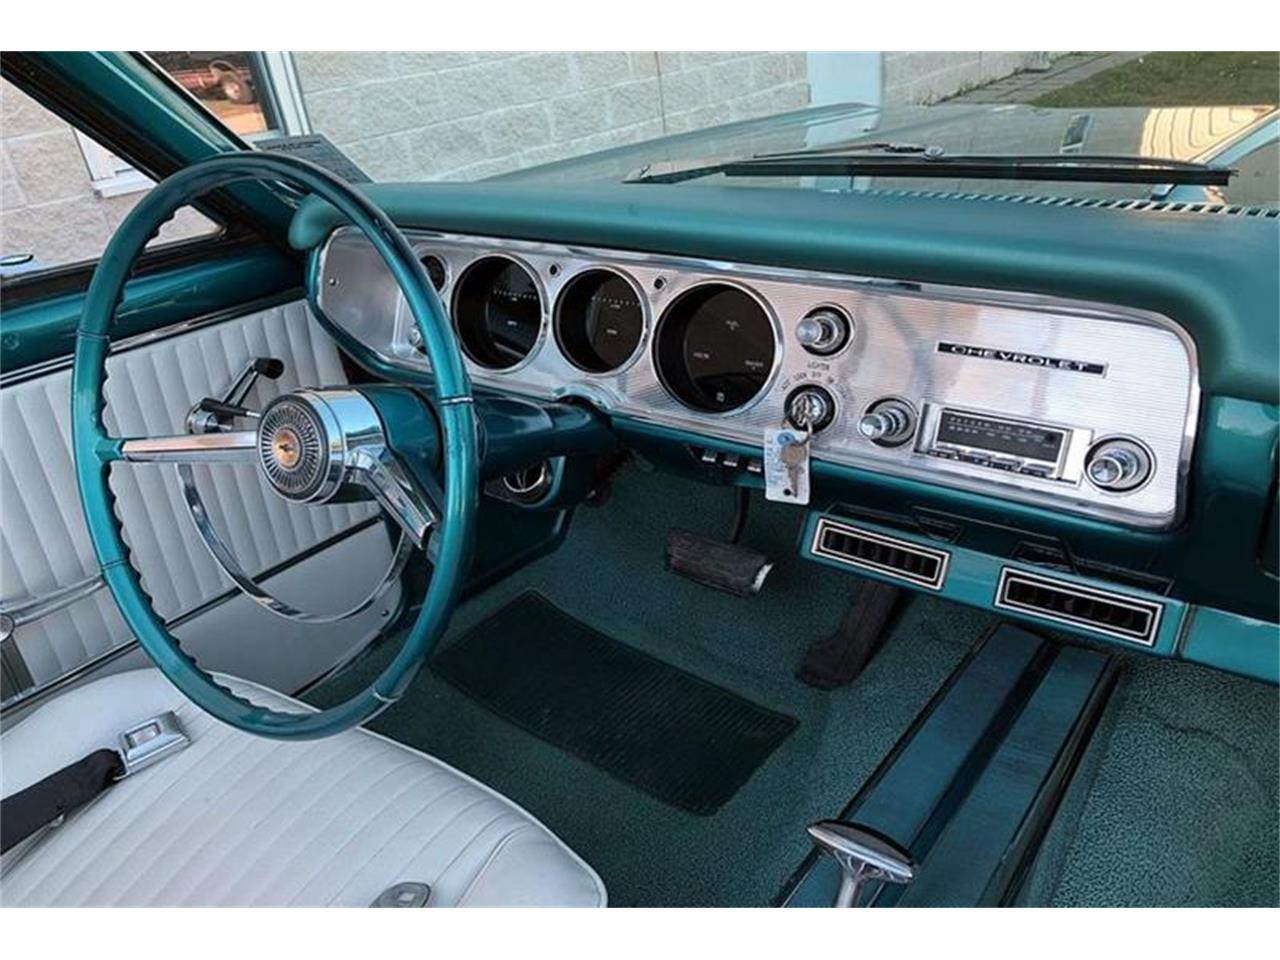 1964 Chevrolet Chevelle for sale in Fredericksburg, TX – photo 20